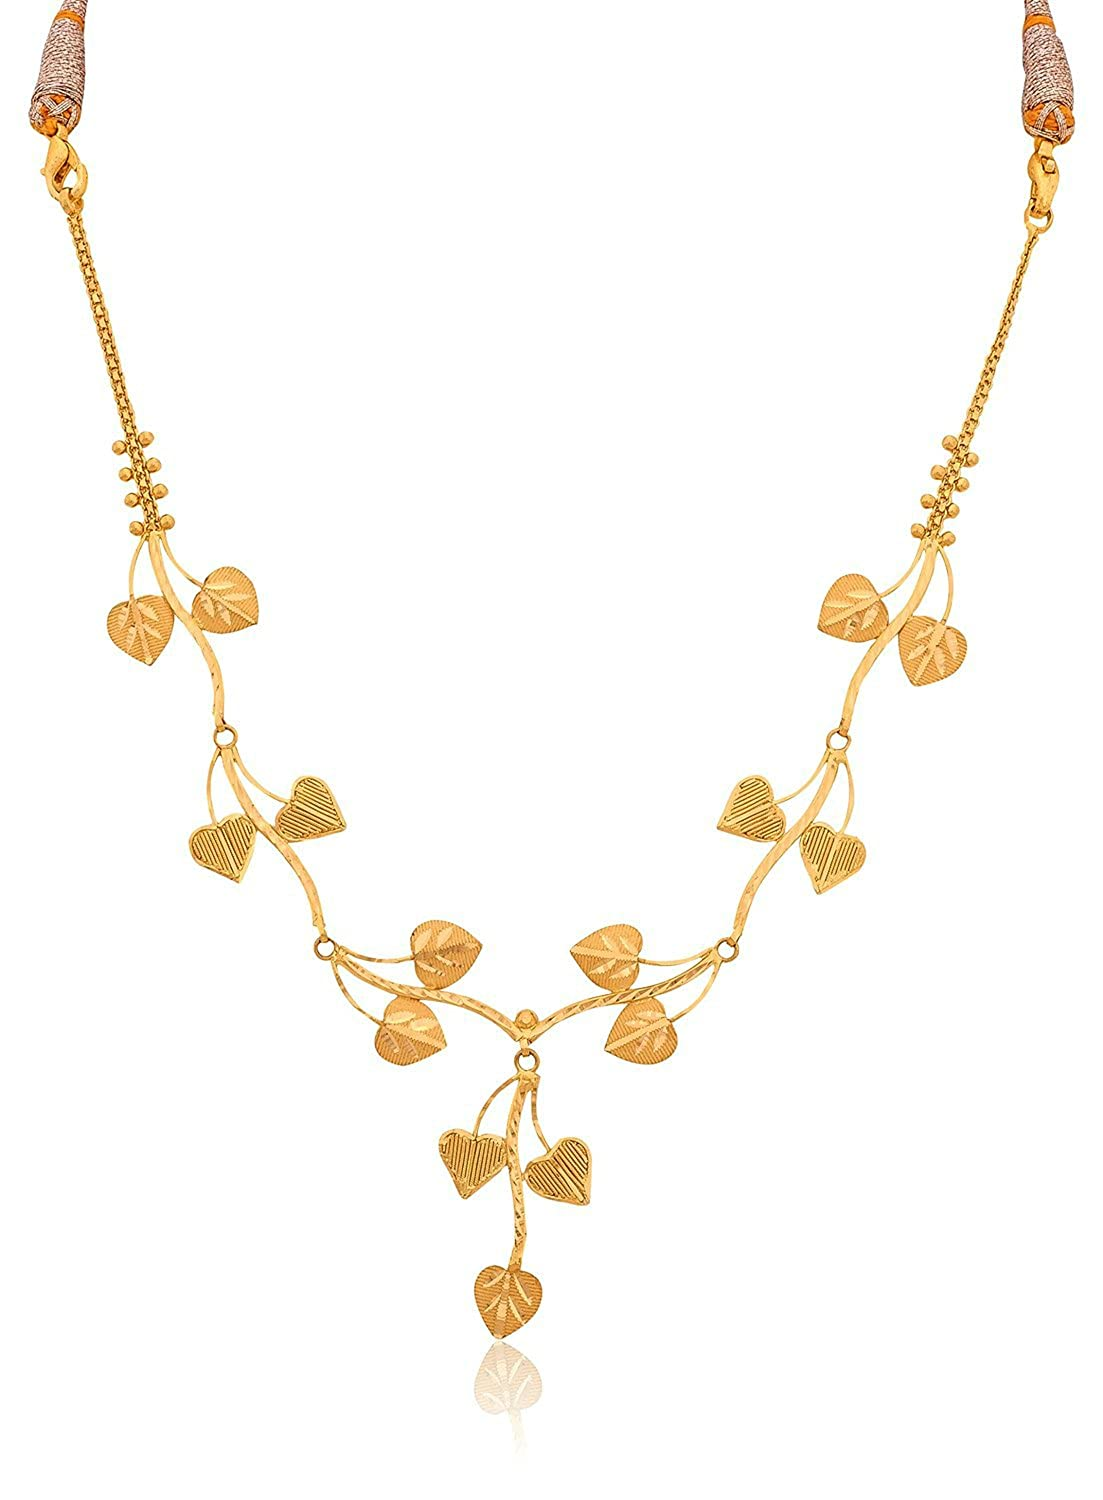 chains pure every necklace you adorning jewellers on gold khimji occasion